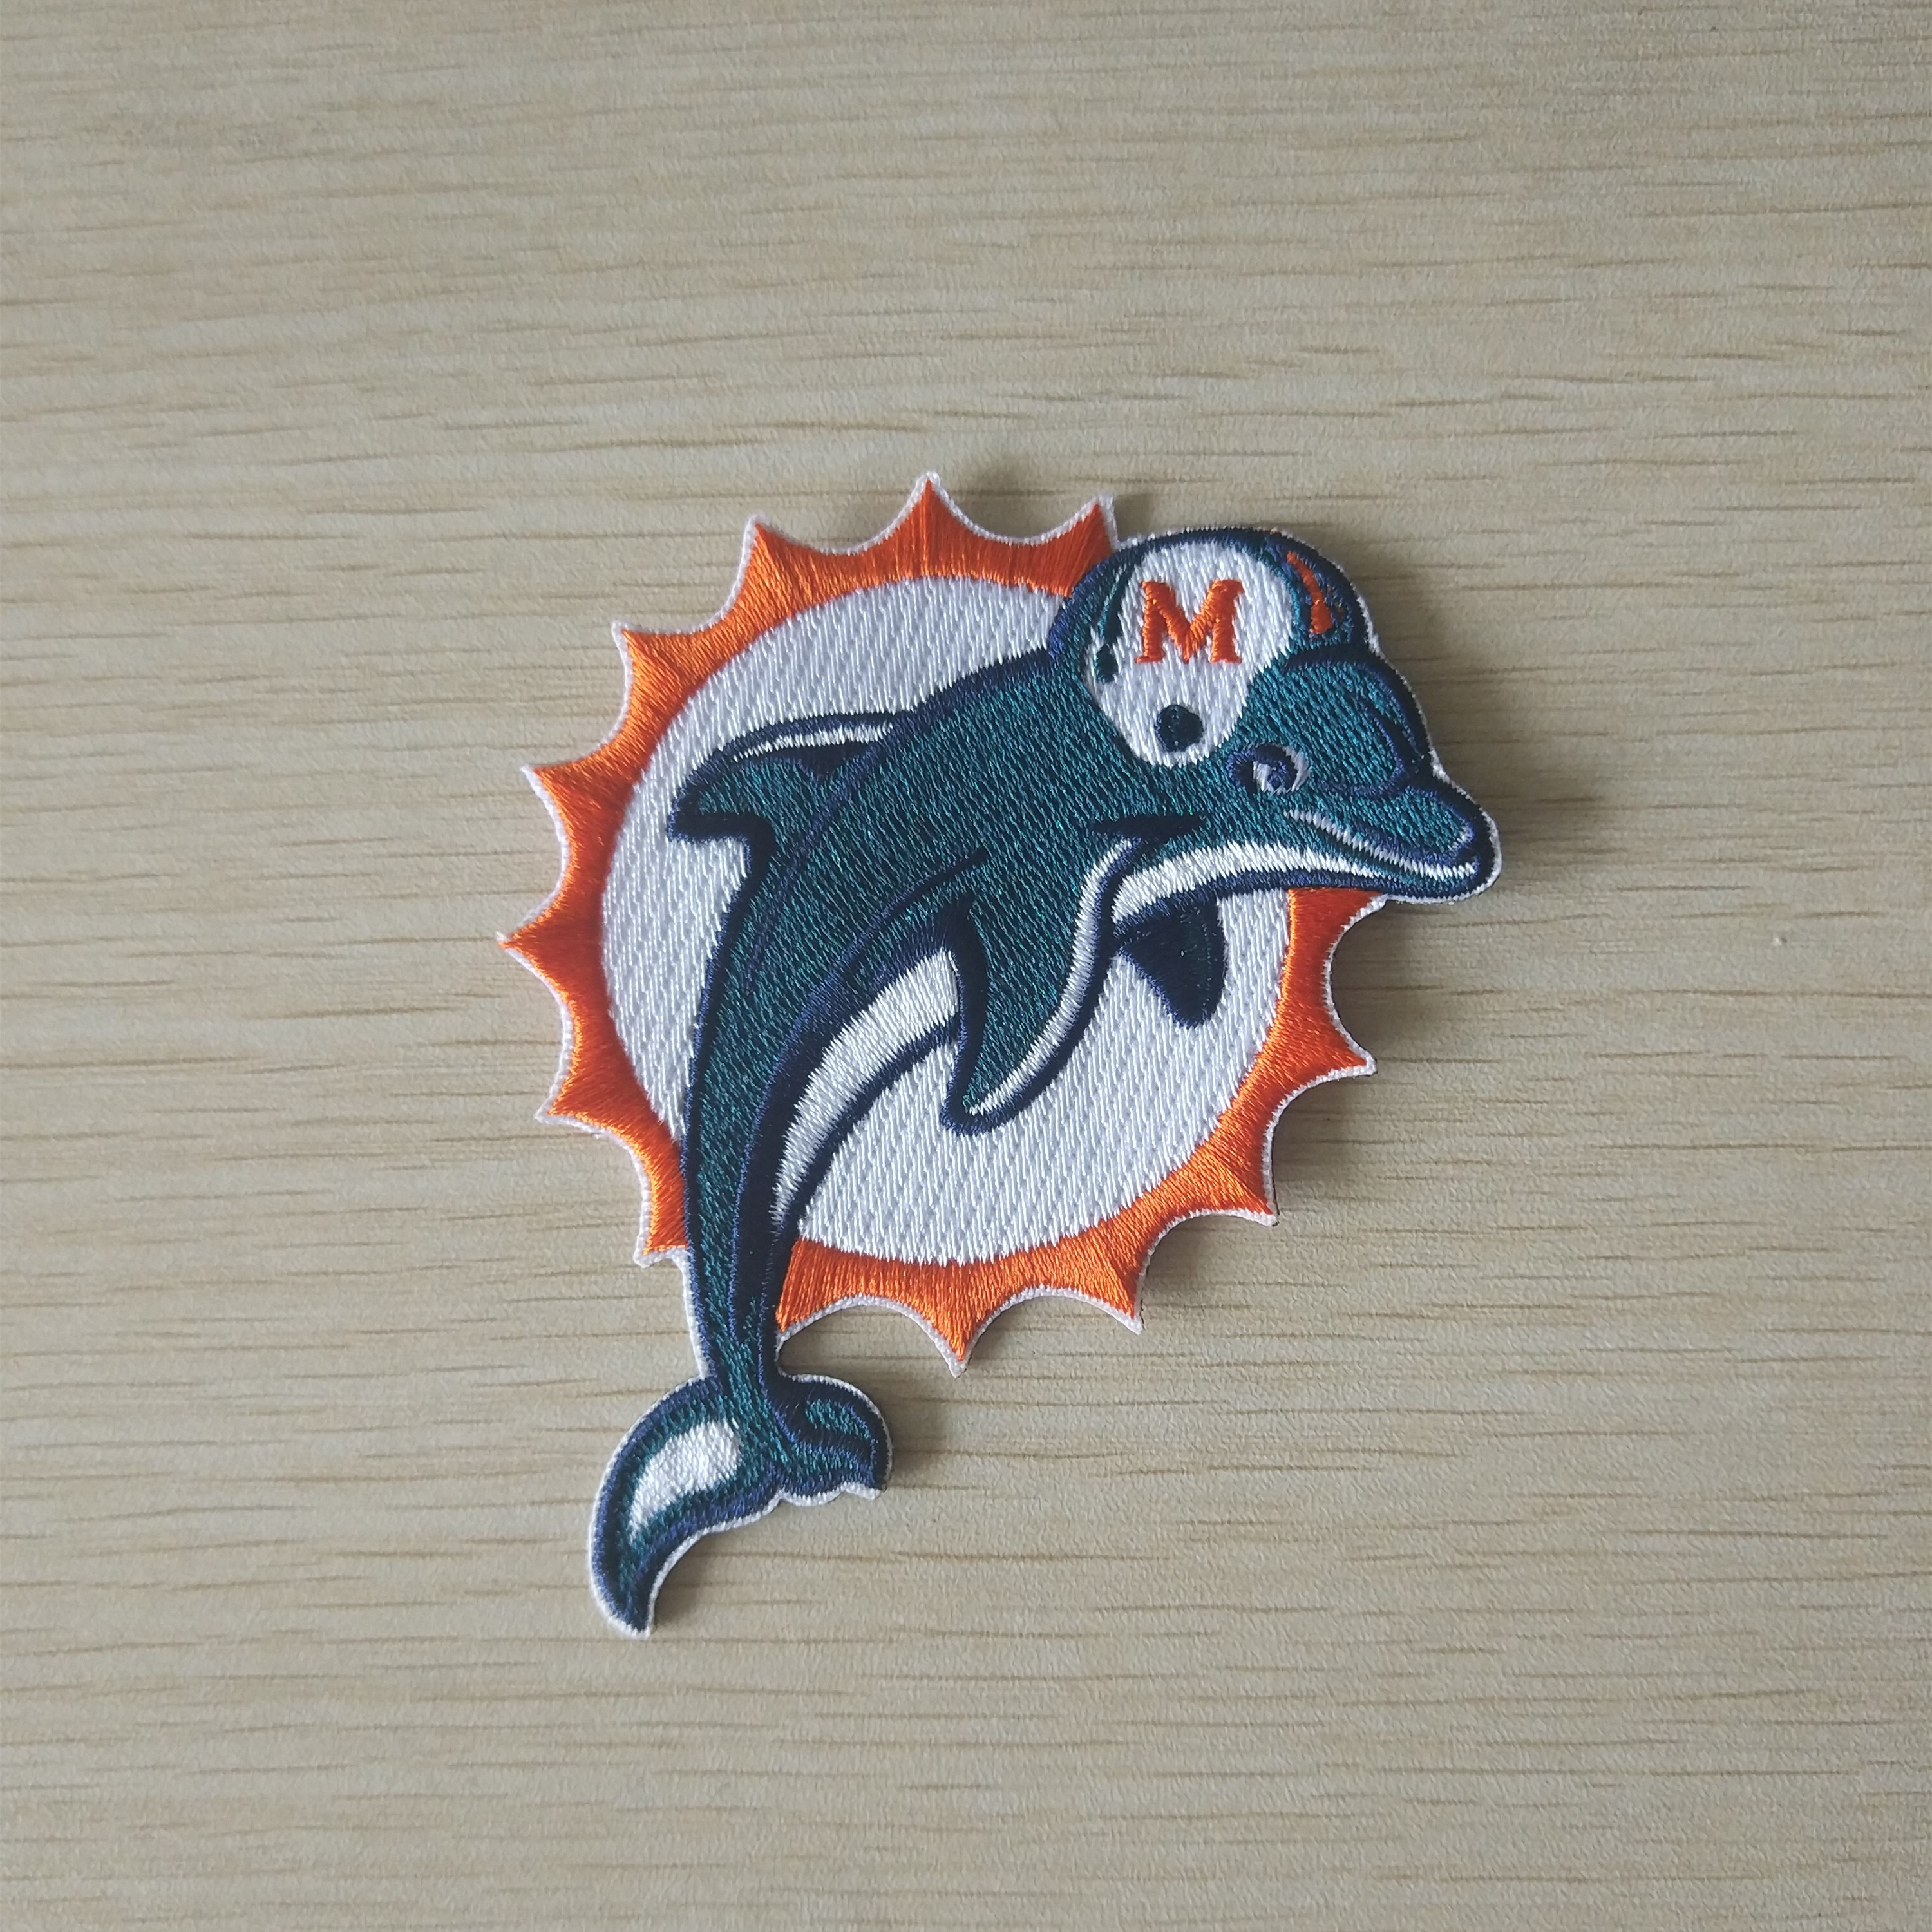 Miami Dolphins Iron on Embroidered Patch